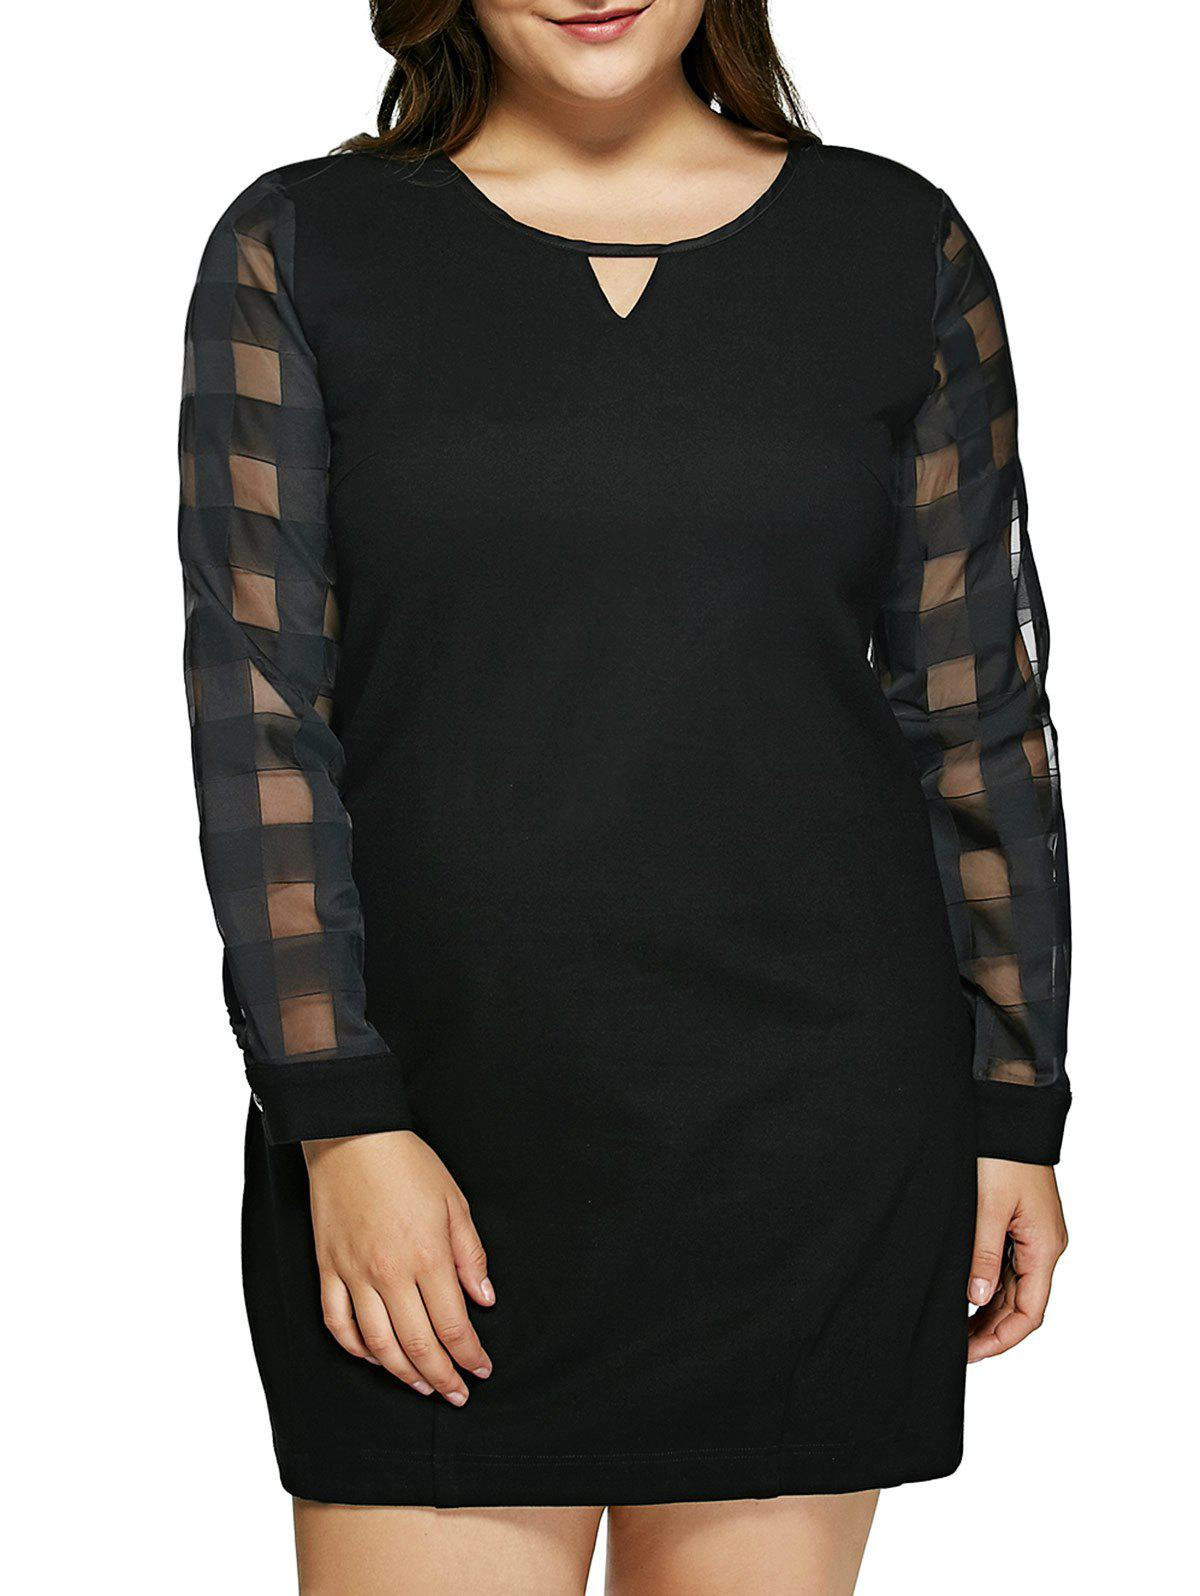 Plus Size Mesh Trim Keyhole Neck Dress - BLACK 6XL